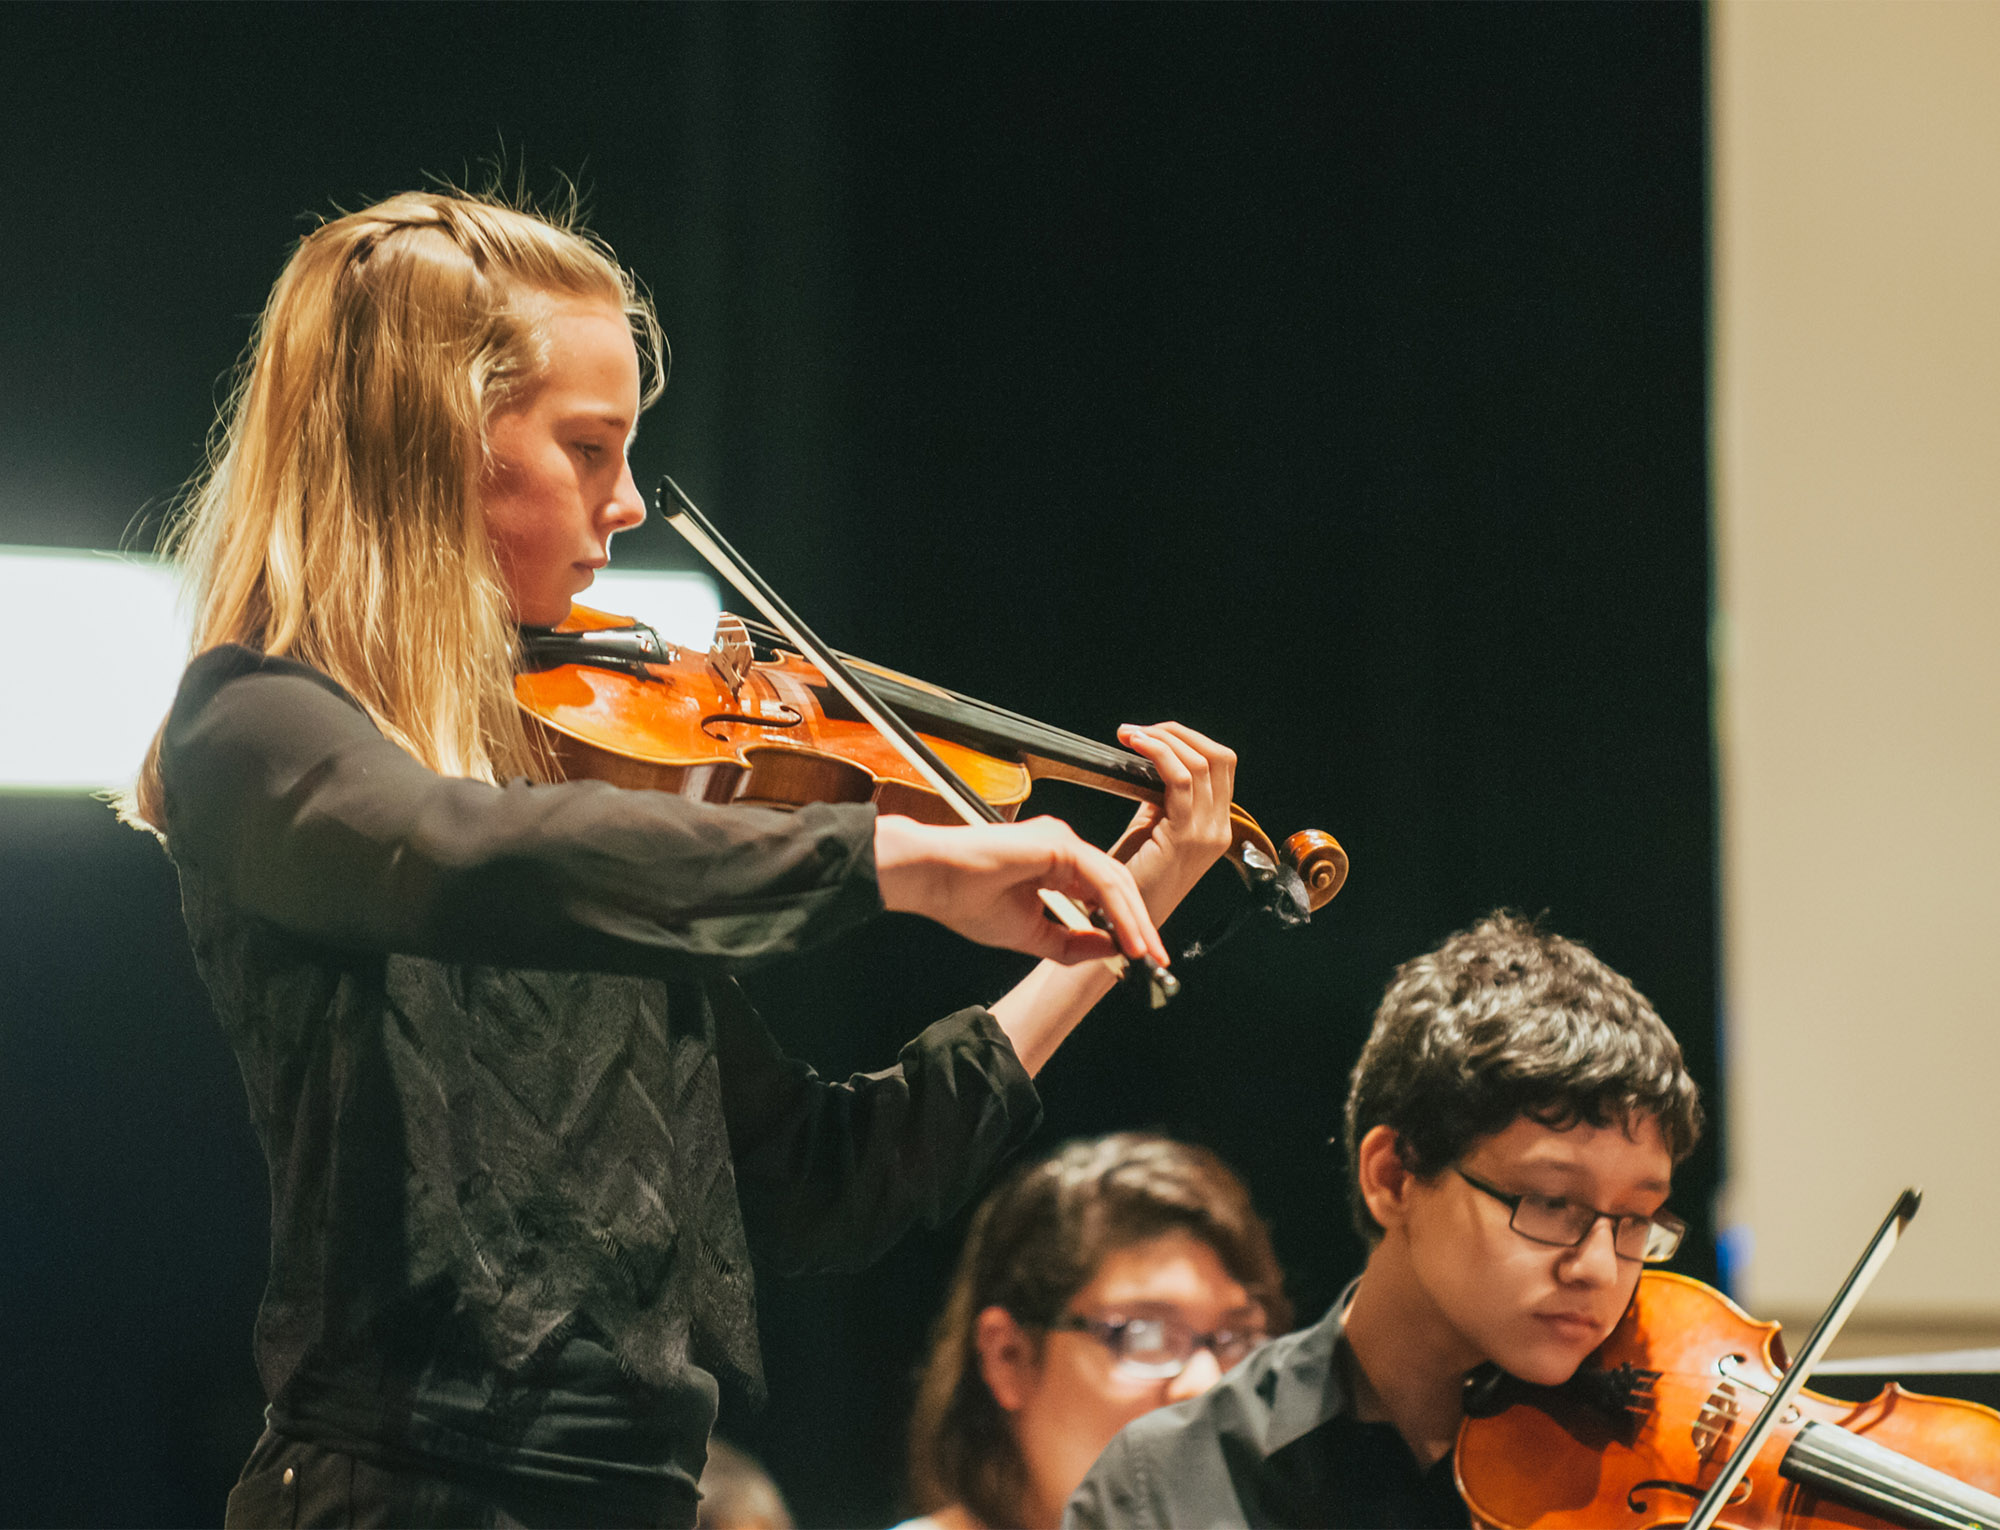 Memorial MS: Creating high caliber artists through fine arts programs